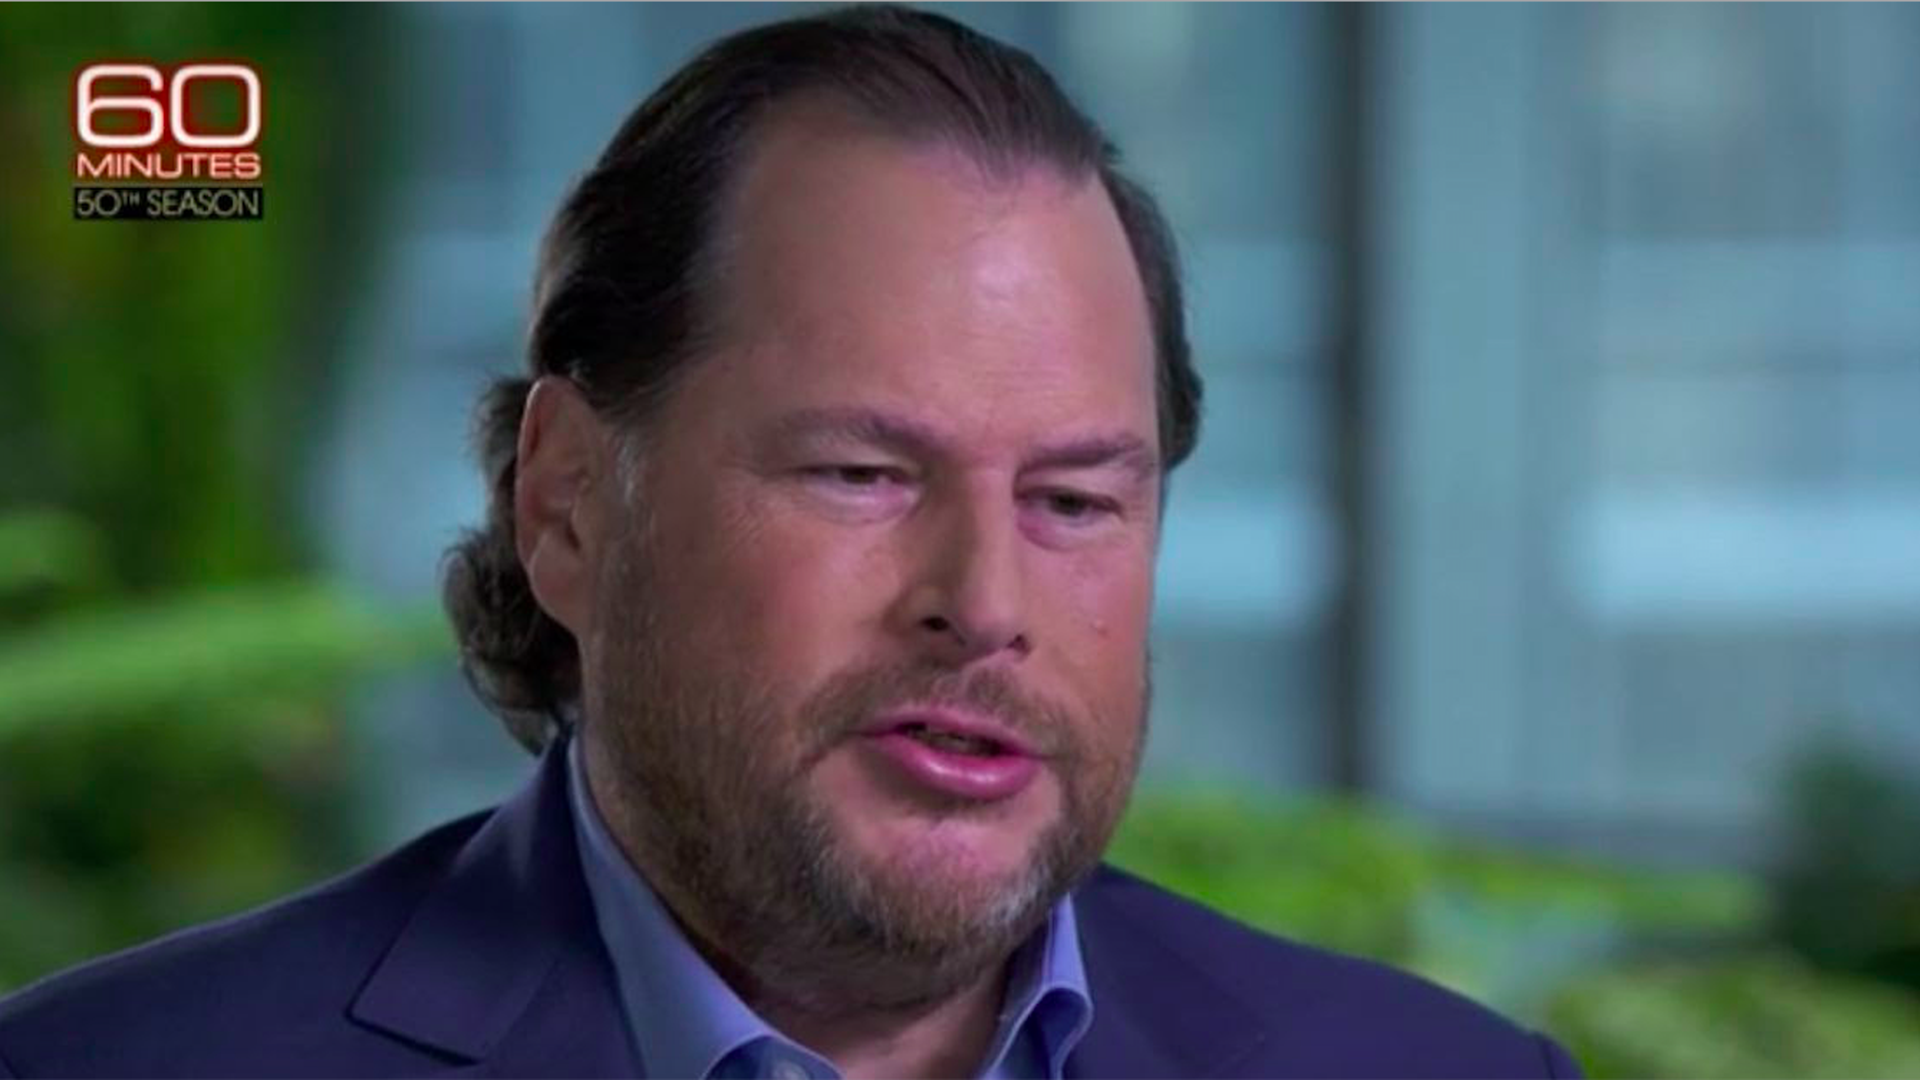 Marc Benioff on 60 Minutes